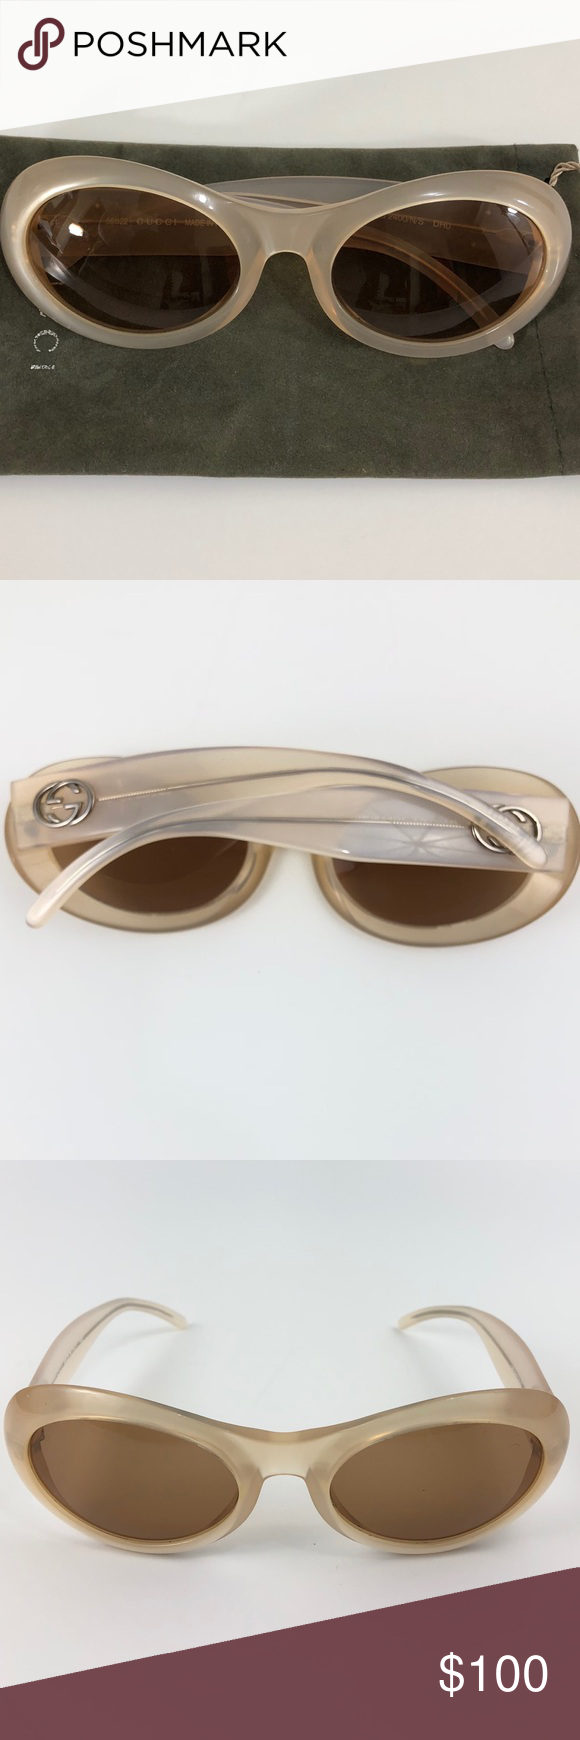 aae6b7847435f Women s AUTHENTIC Gucci GG 2400 N S Sunglasses Pre-owned Authentic Retro  Gucci Sunglasses Free from scratches Cat Eye Lens  Brown Gradient GG Logo  Frame  ...